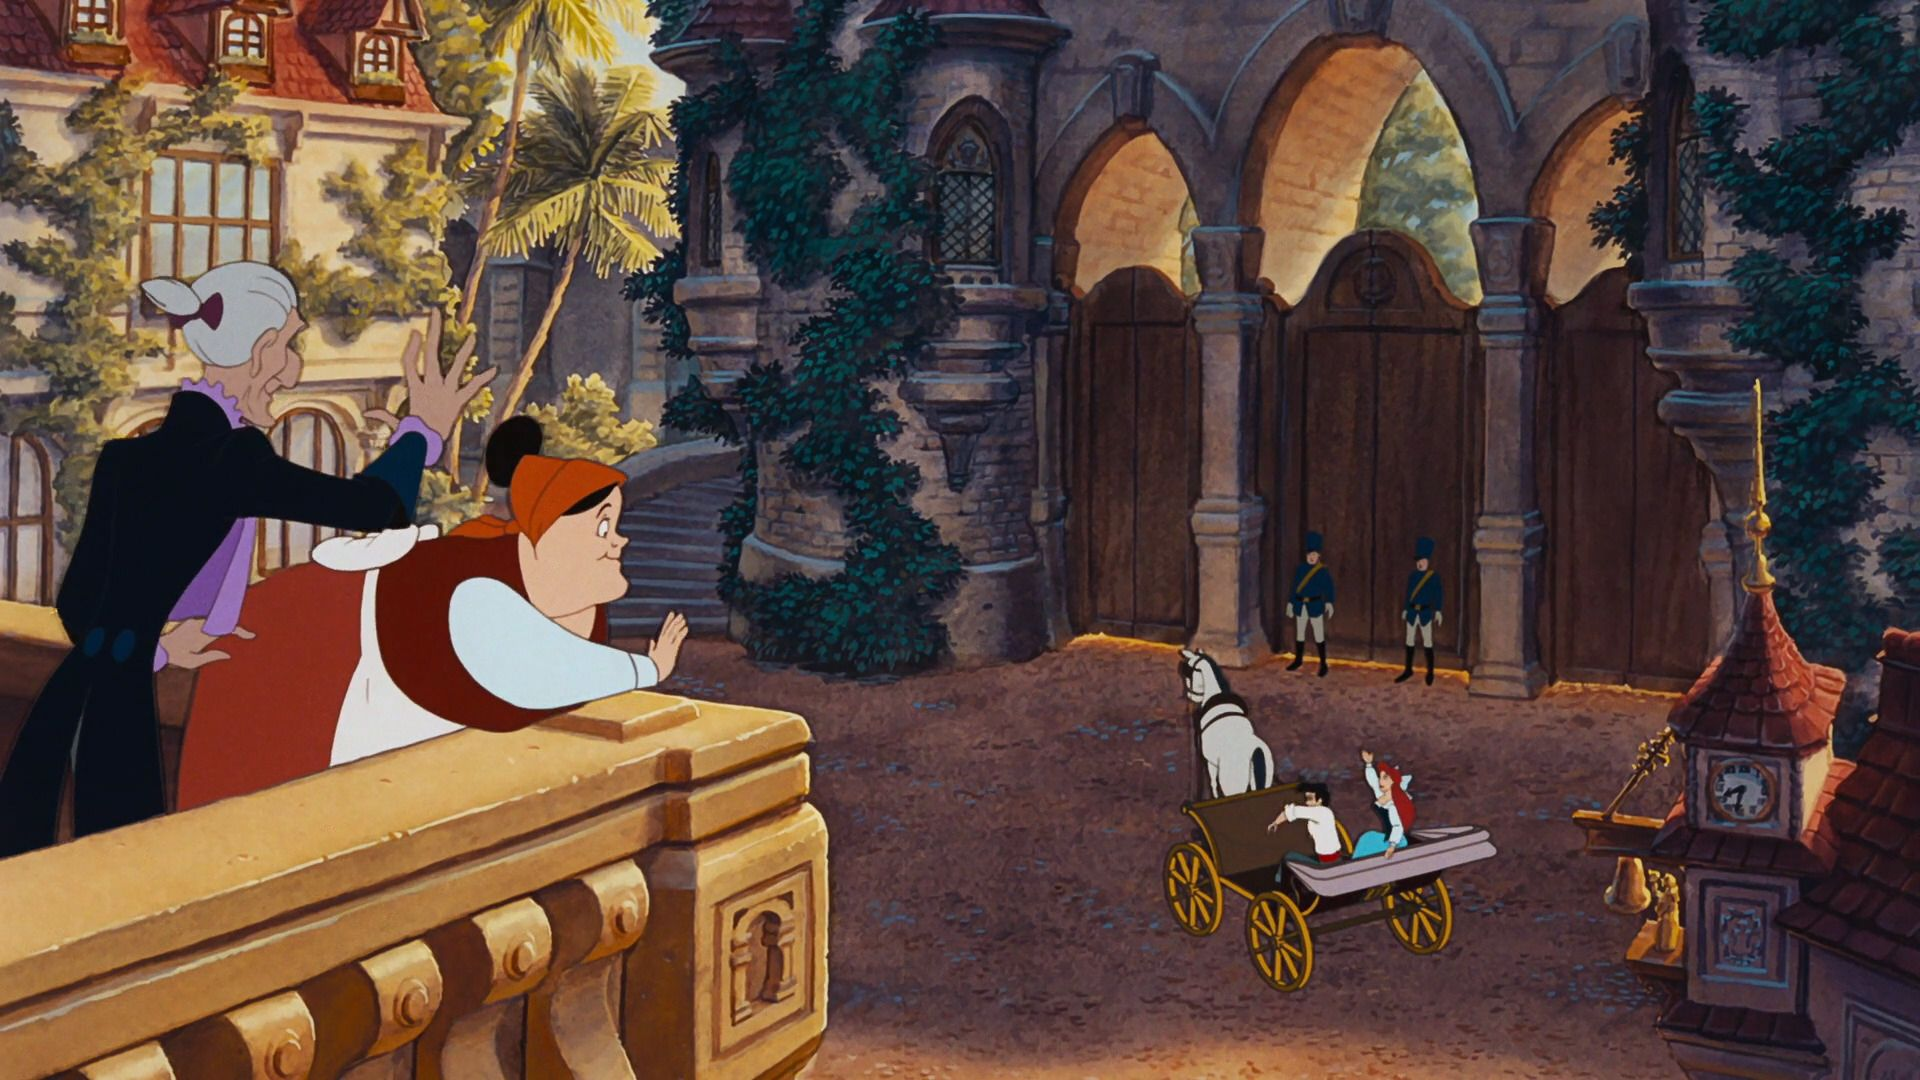 little mermaid castle courtyard | Little-mermaid-1080p-disneyscreencaps.com-6771